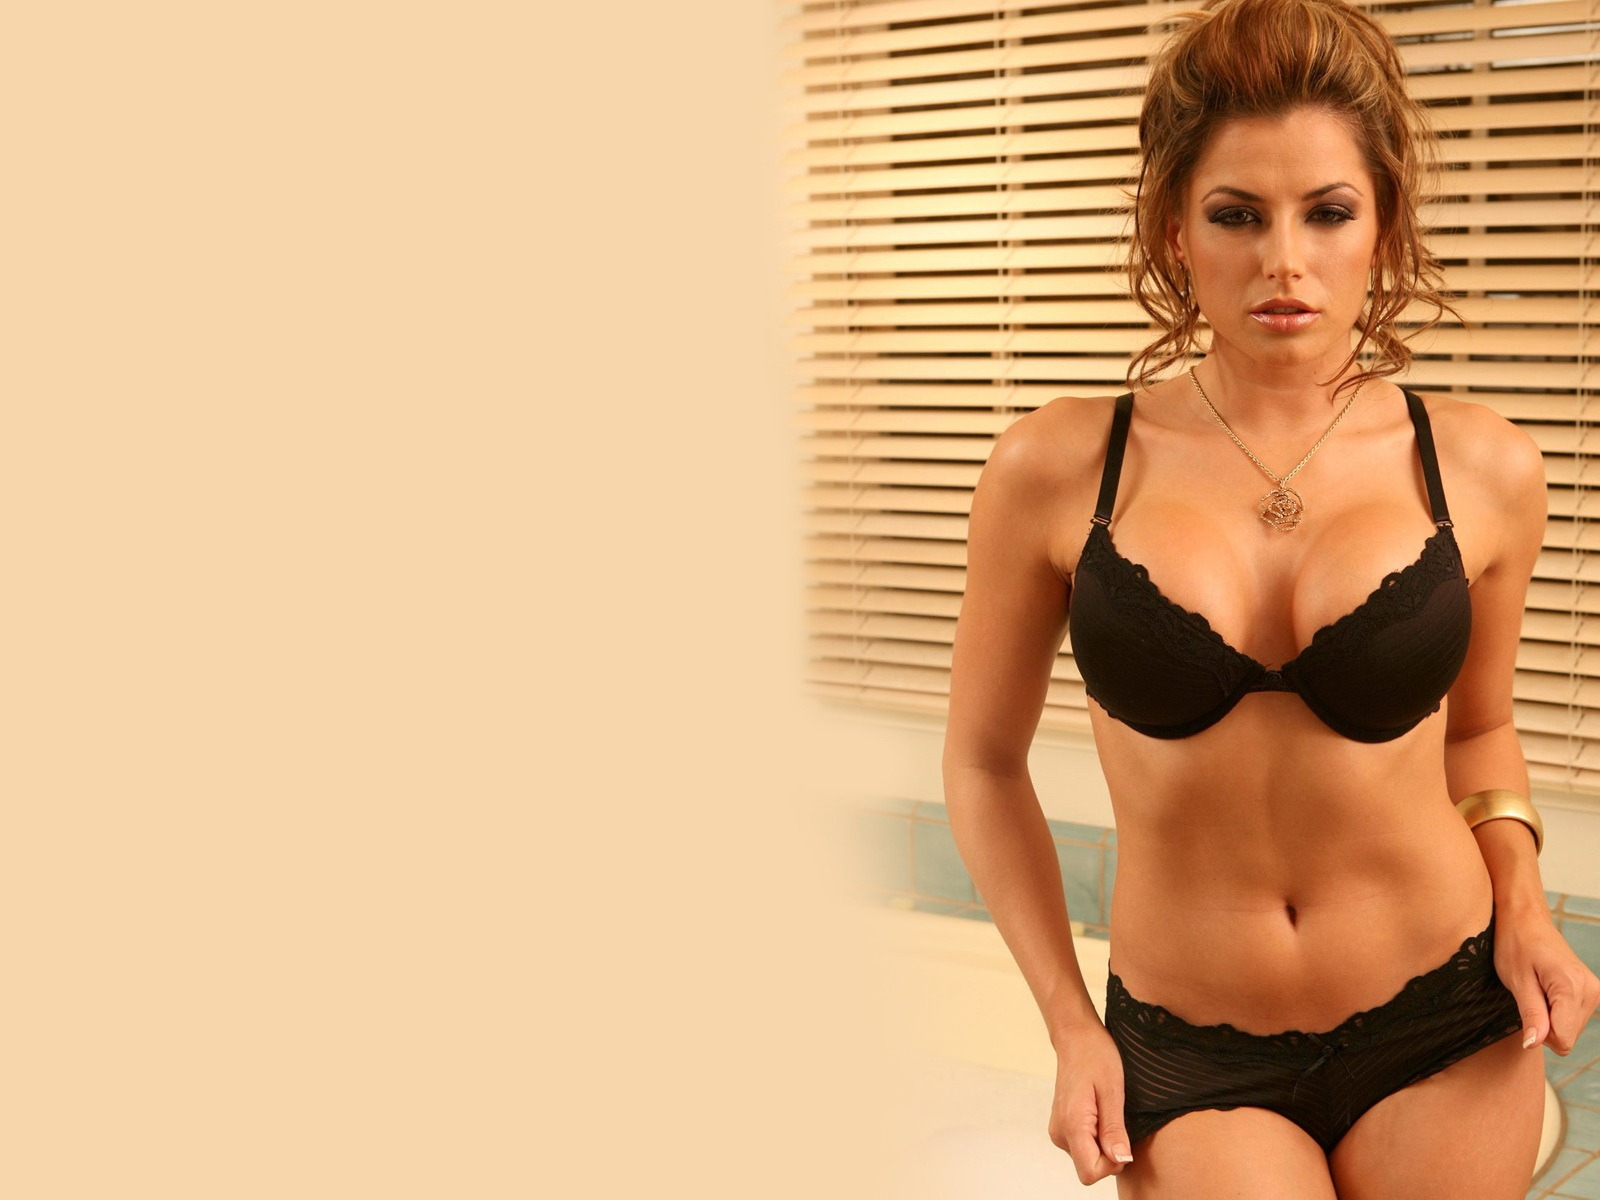 Louise Glover #003 - 1600x1200 Wallpapers Pictures Photos Images